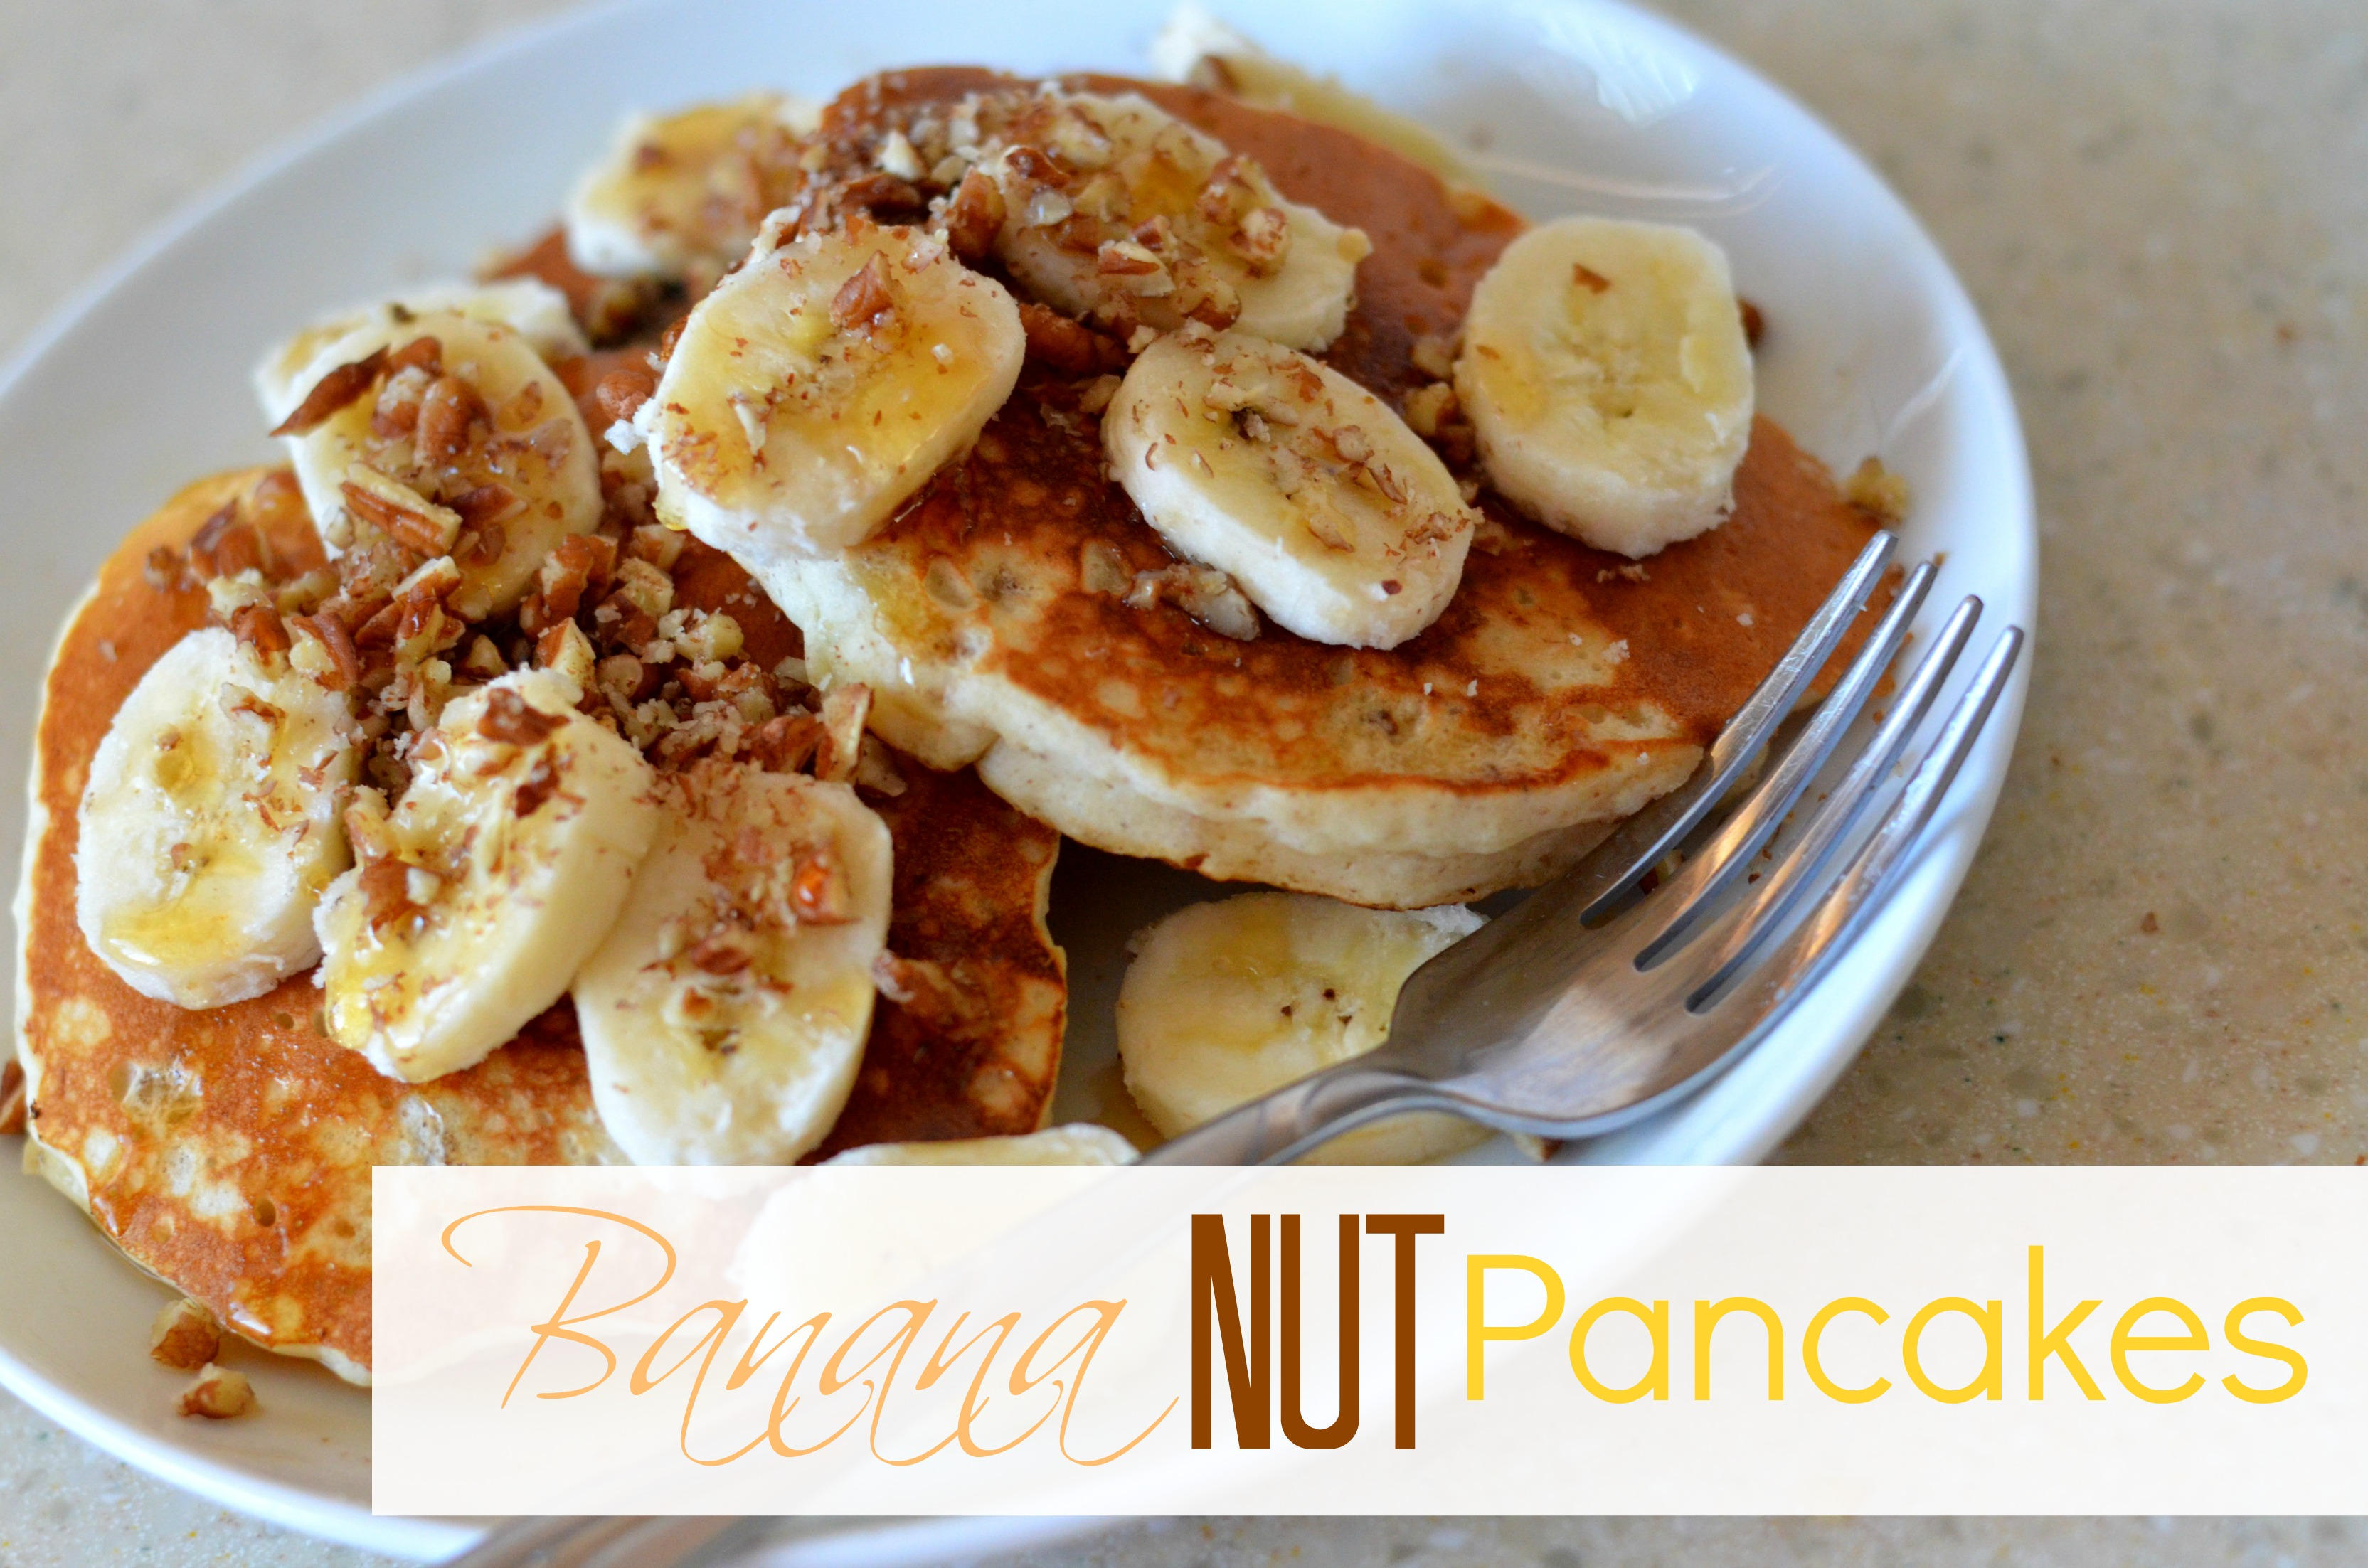 ... pancakes roasted banana whole wheat pancakes banana nut pancakes a